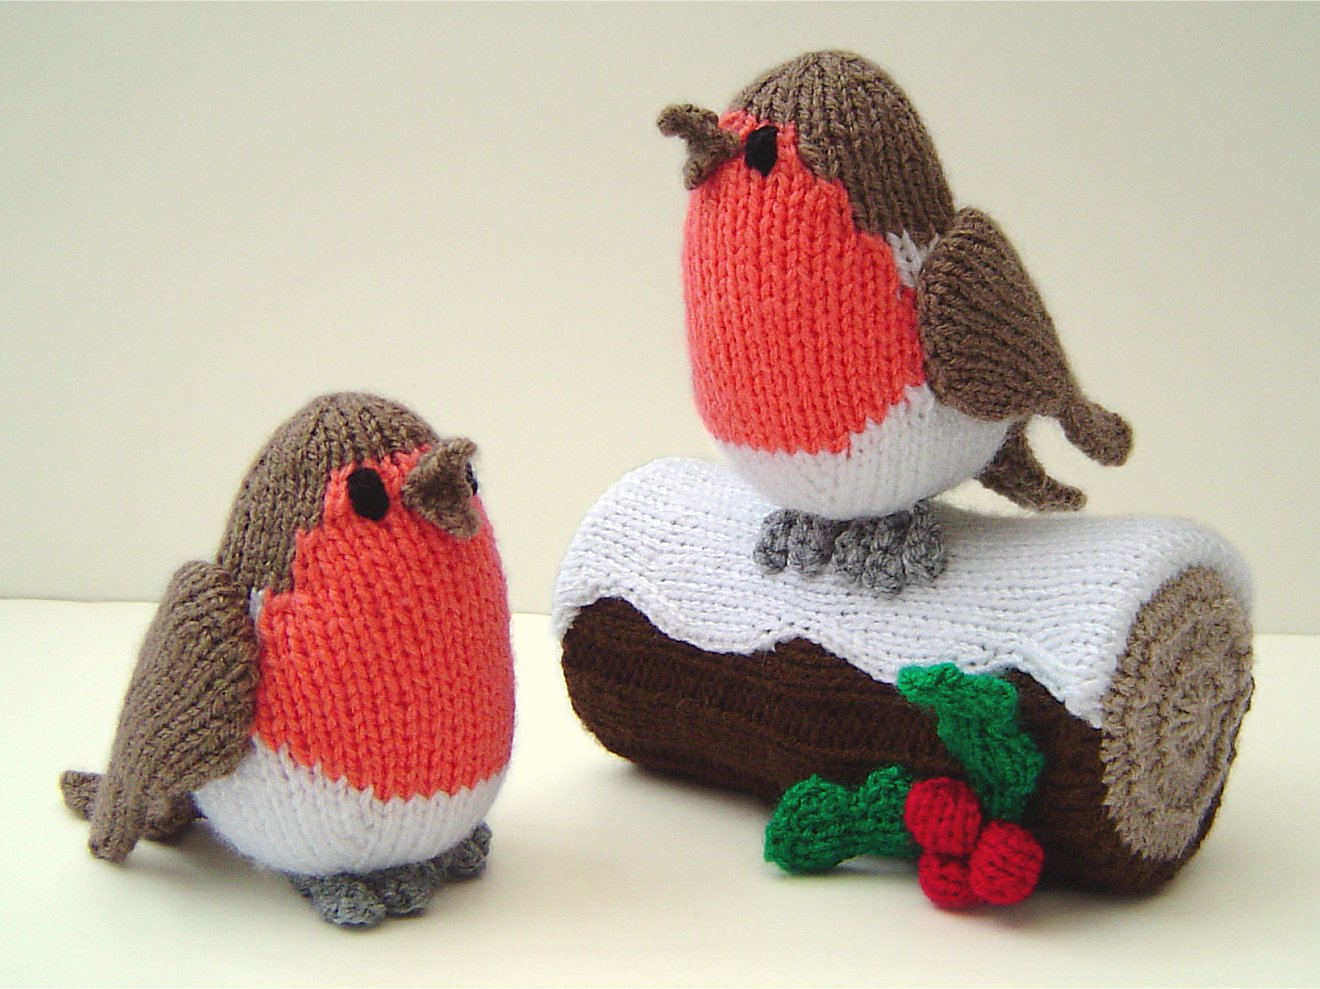 ... start on the Christmas decorations with a Knitted Robin and Yule Log